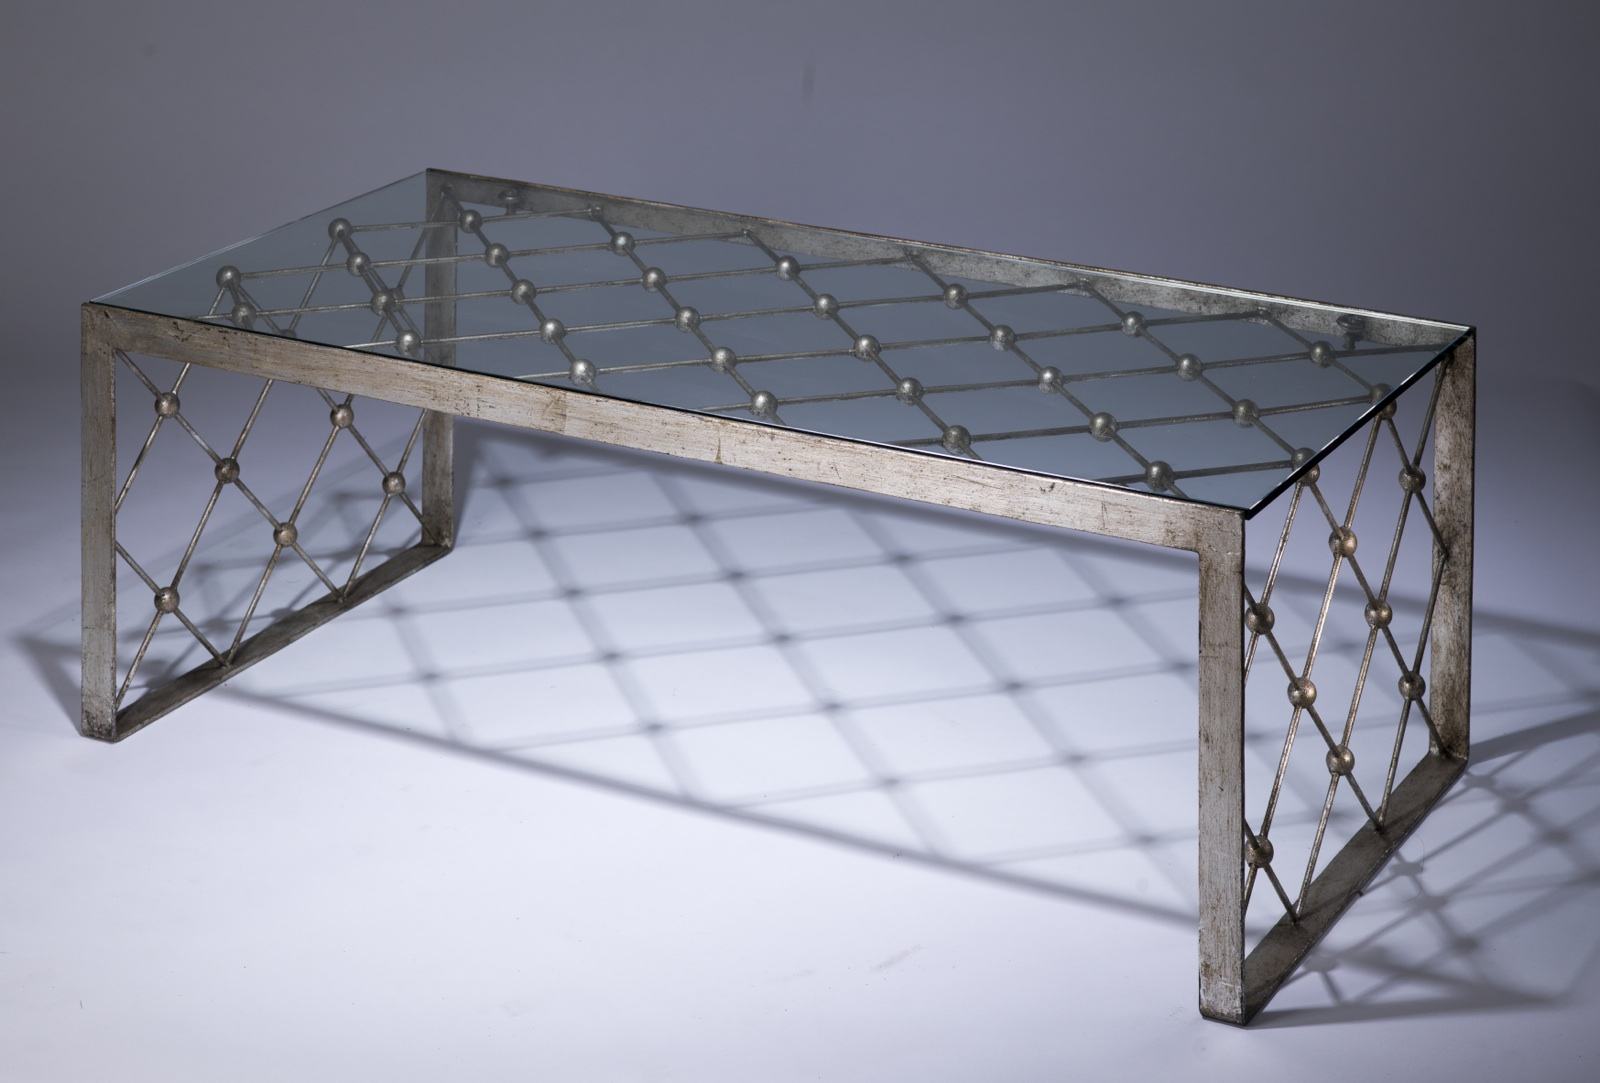 Wrought iron net coffee table in distressed silver leaf finish